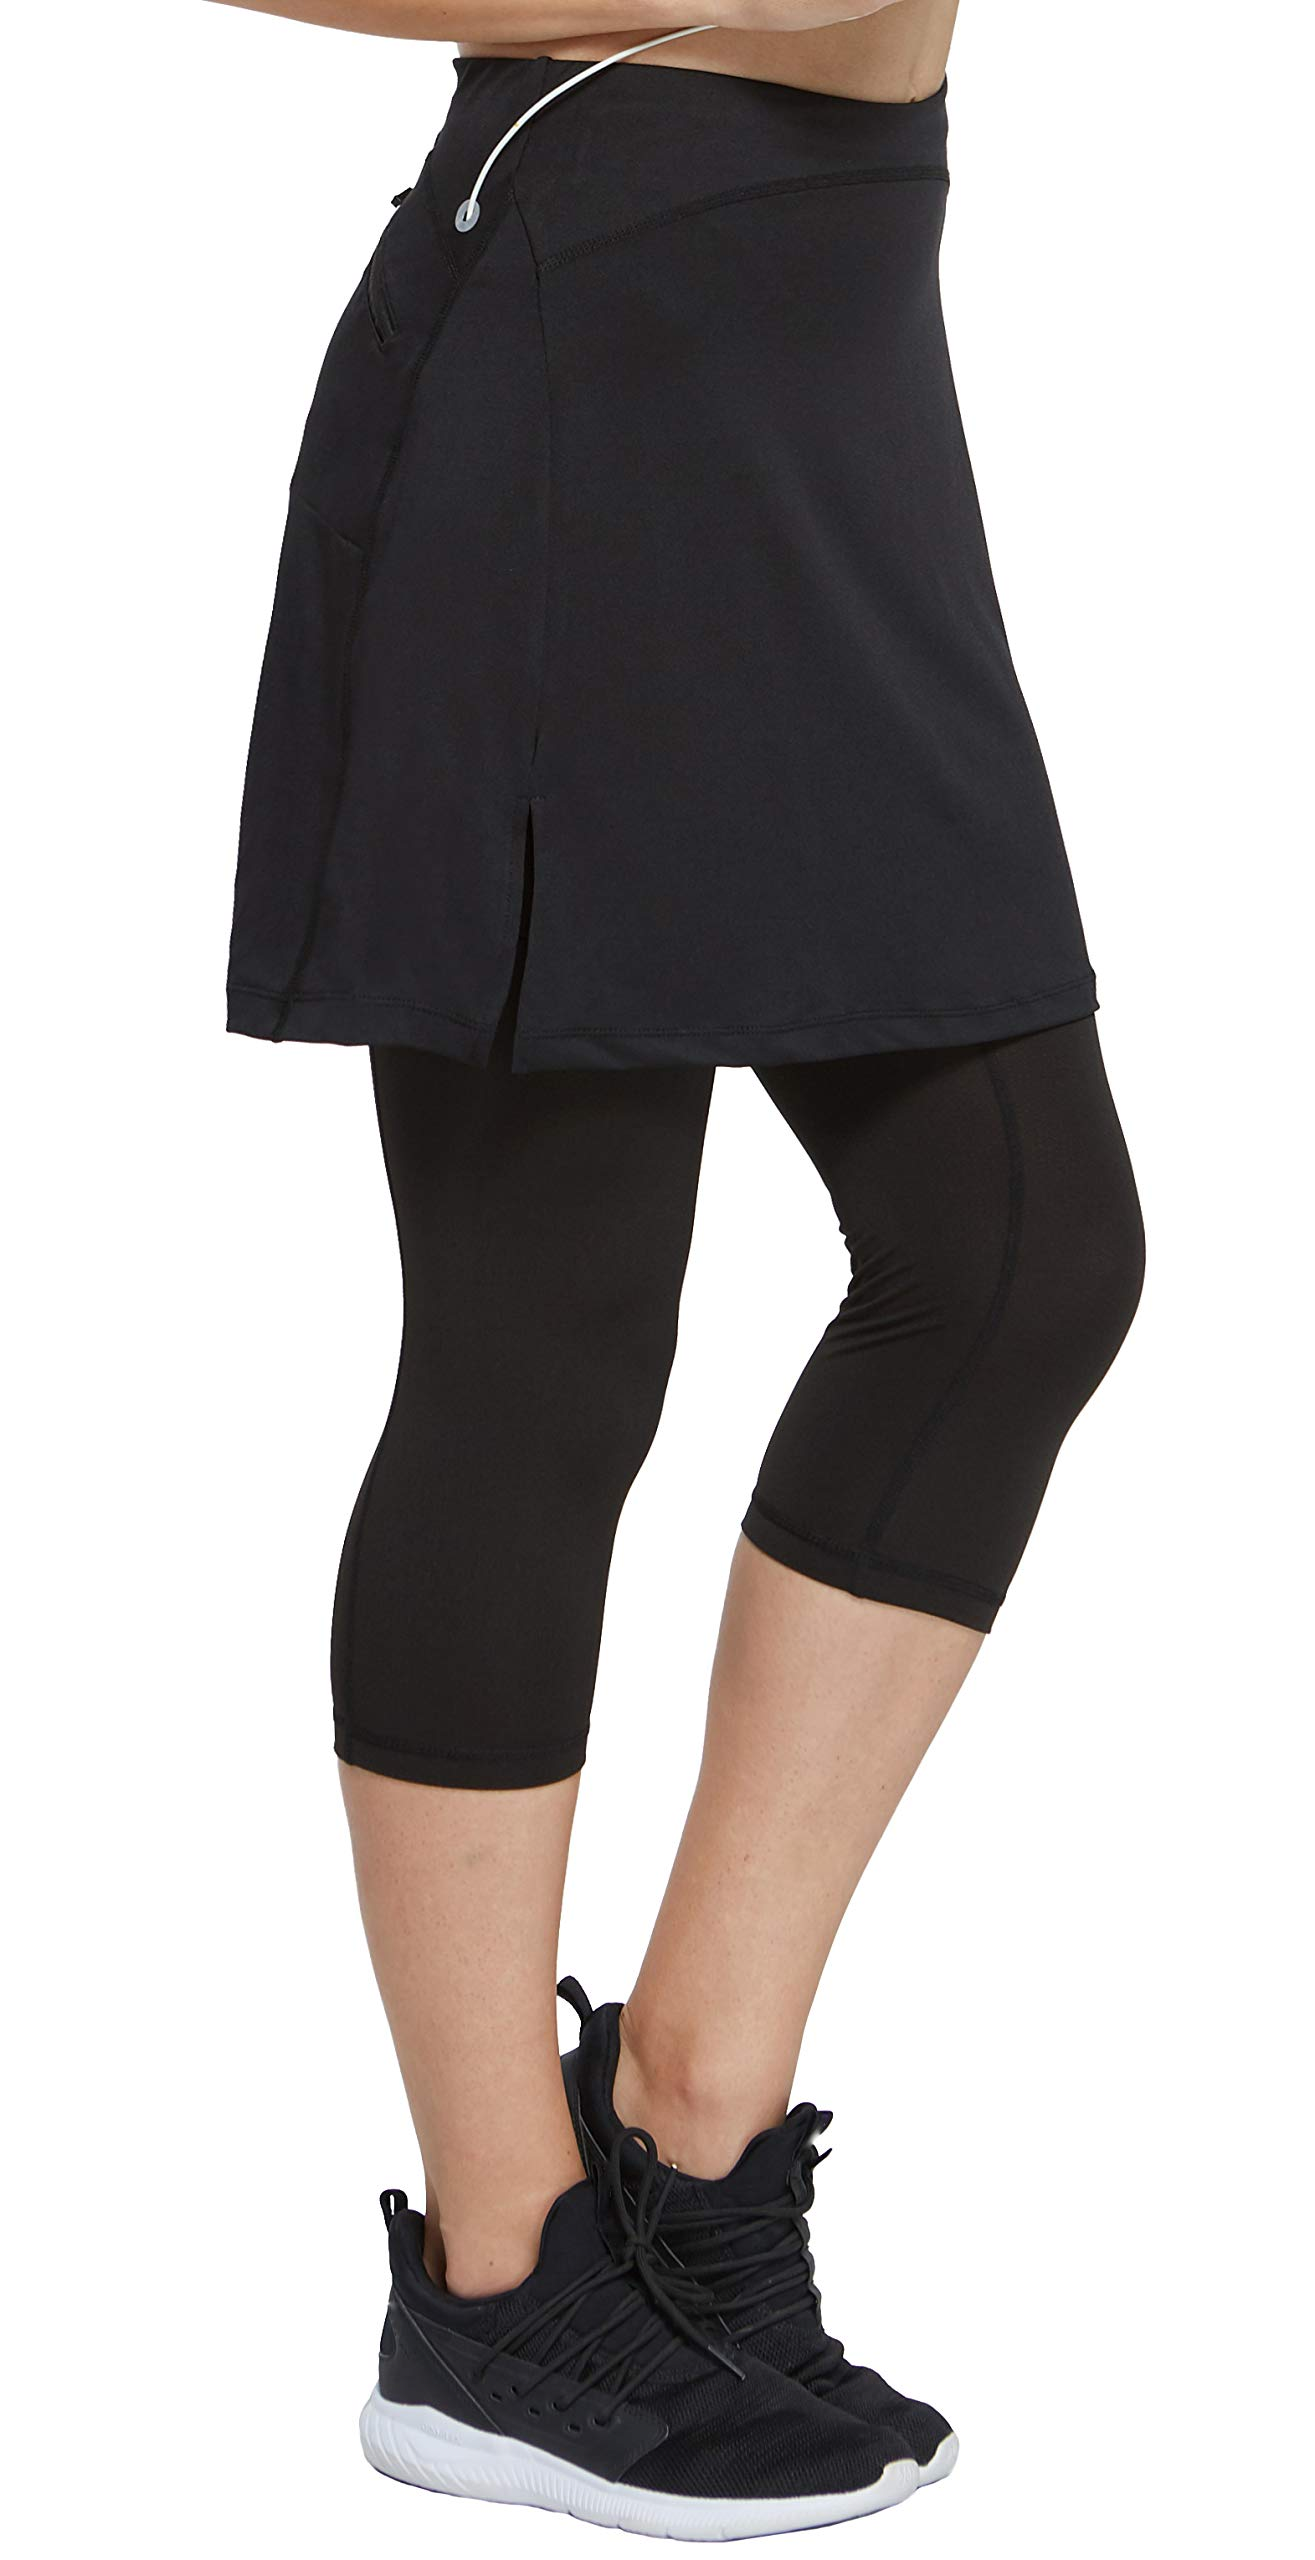 slimour Women Golf Skirt with Leggings Capri Skirt Leggings with Pockets Skirted Leggings Black M by slimour